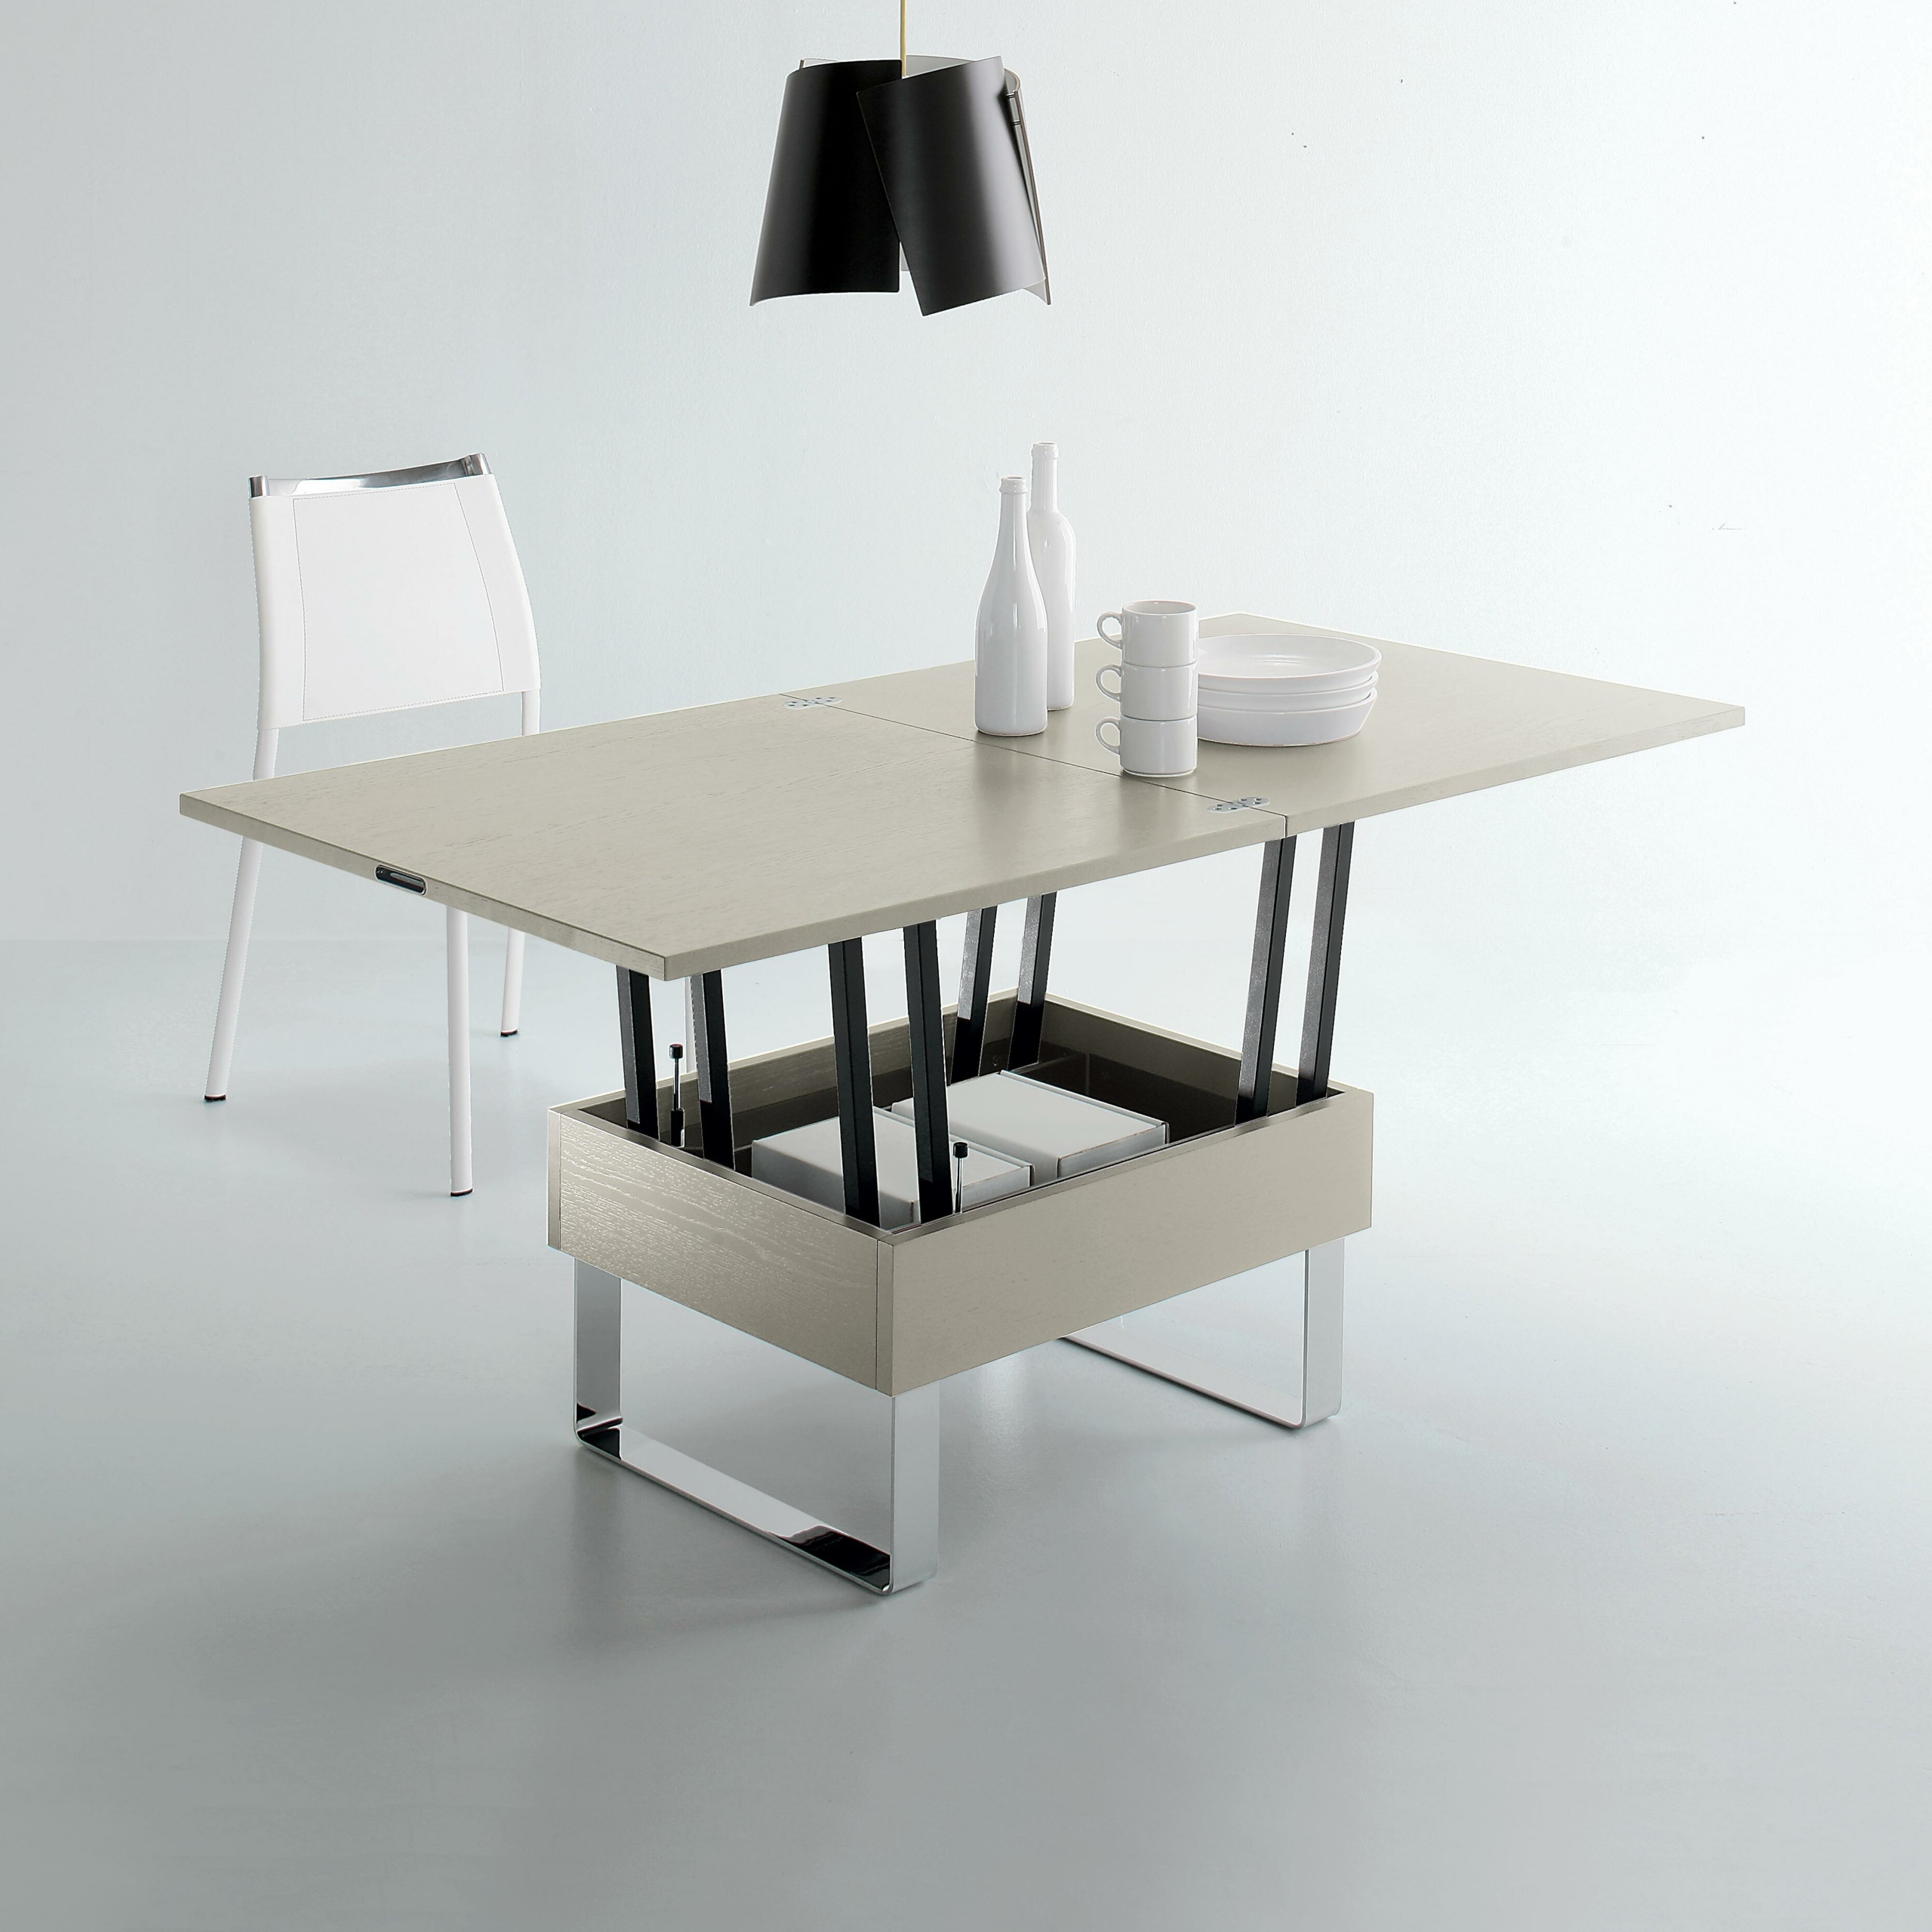 GIOVE: Extendable Coffee Table, 80/160x80 Cm, Height 41/74 .